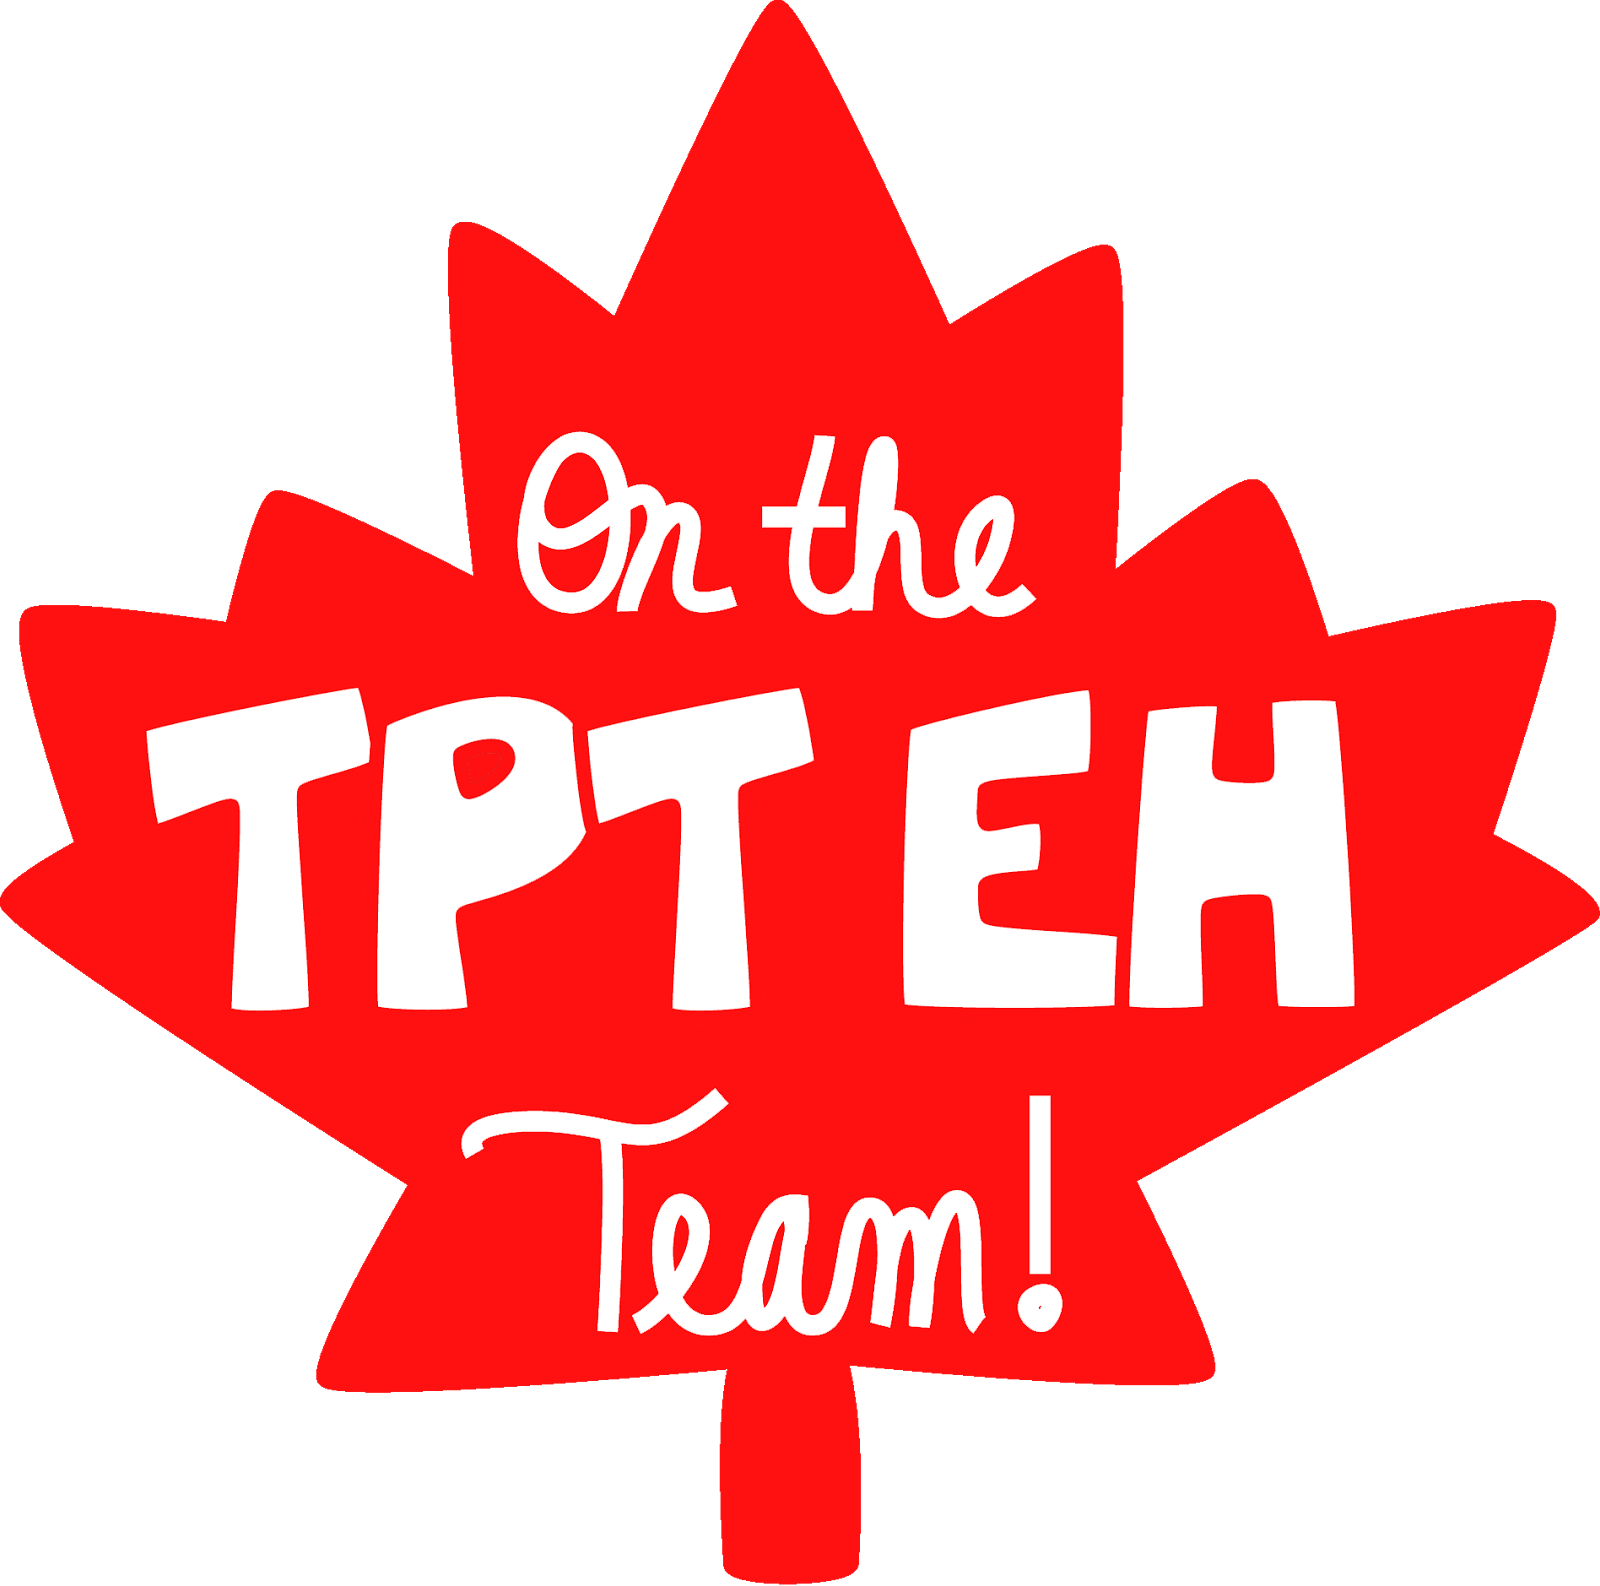 Part of The TPT Eh Team